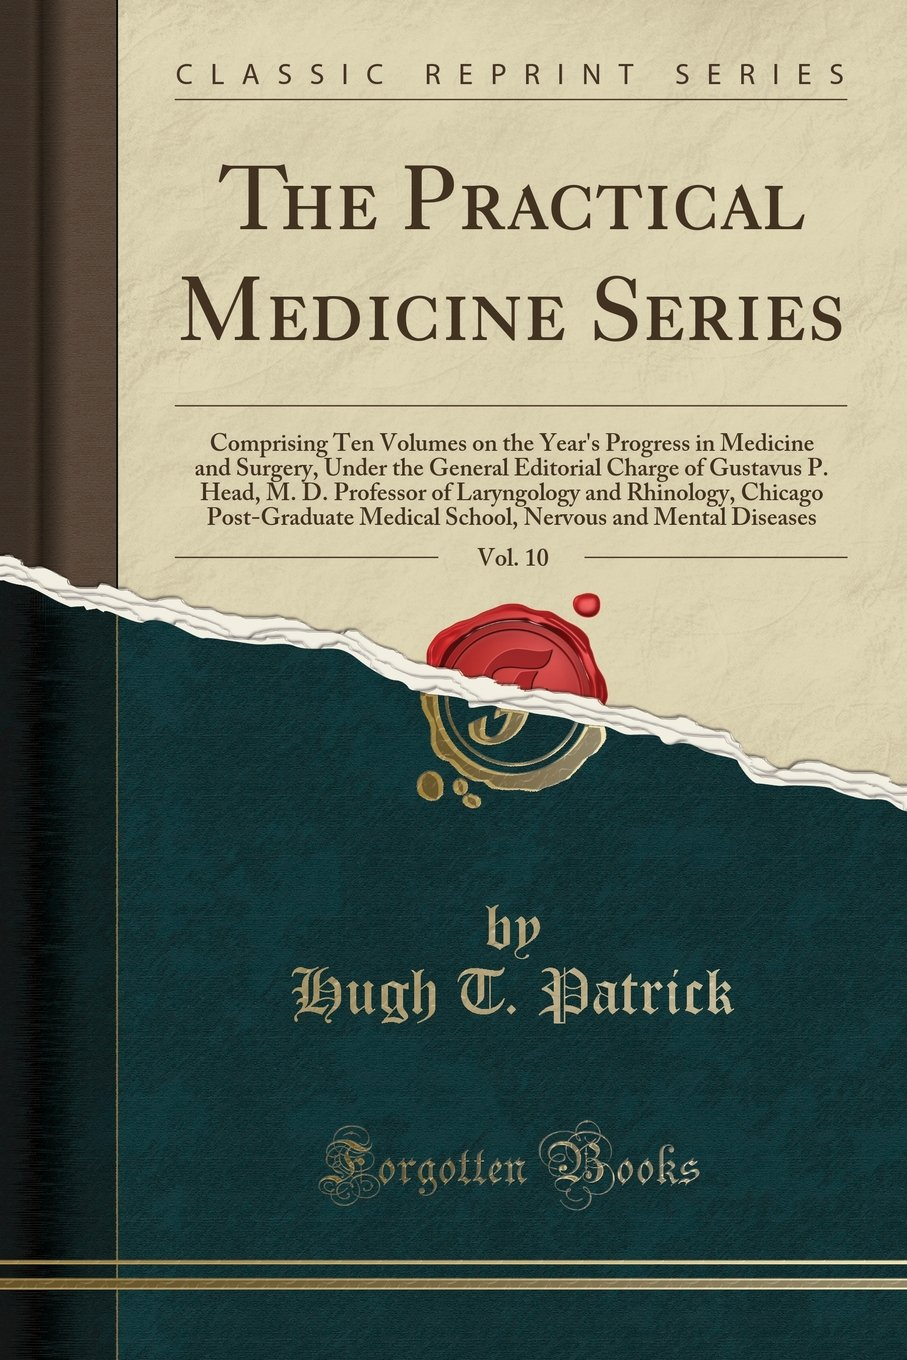 The Practical Medicine Series, Vol. 10: Comprising Ten Volumes on the Year's Progress in Medicine and Surgery, Under the General Editorial Charge of ... Chicago Post-Graduate Medical School, Nerv pdf epub